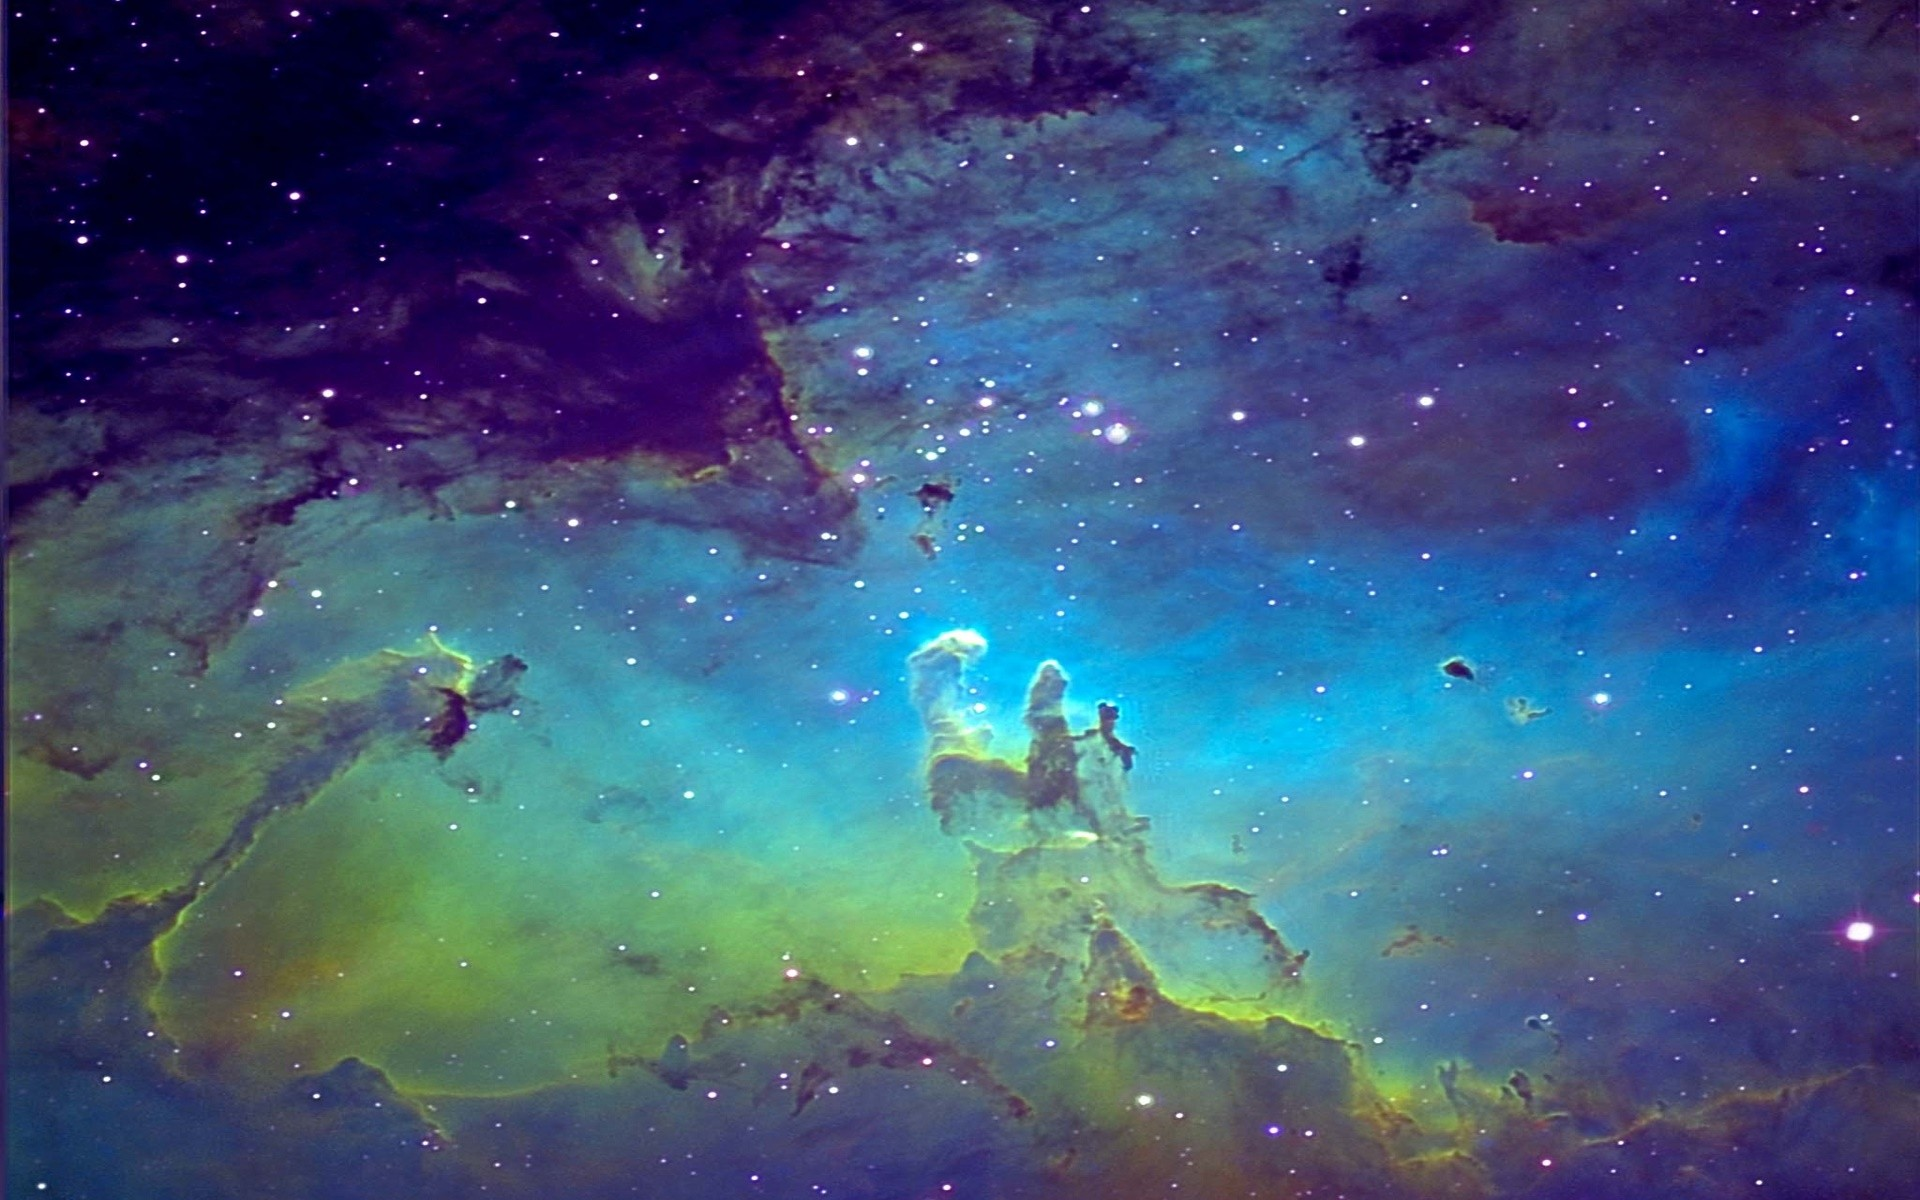 Galaxy wallpaper Tumblr ·① Download free beautiful backgrounds for desktop and mobile devices in any resolution: desktop. Android. iPhone. iPad ...